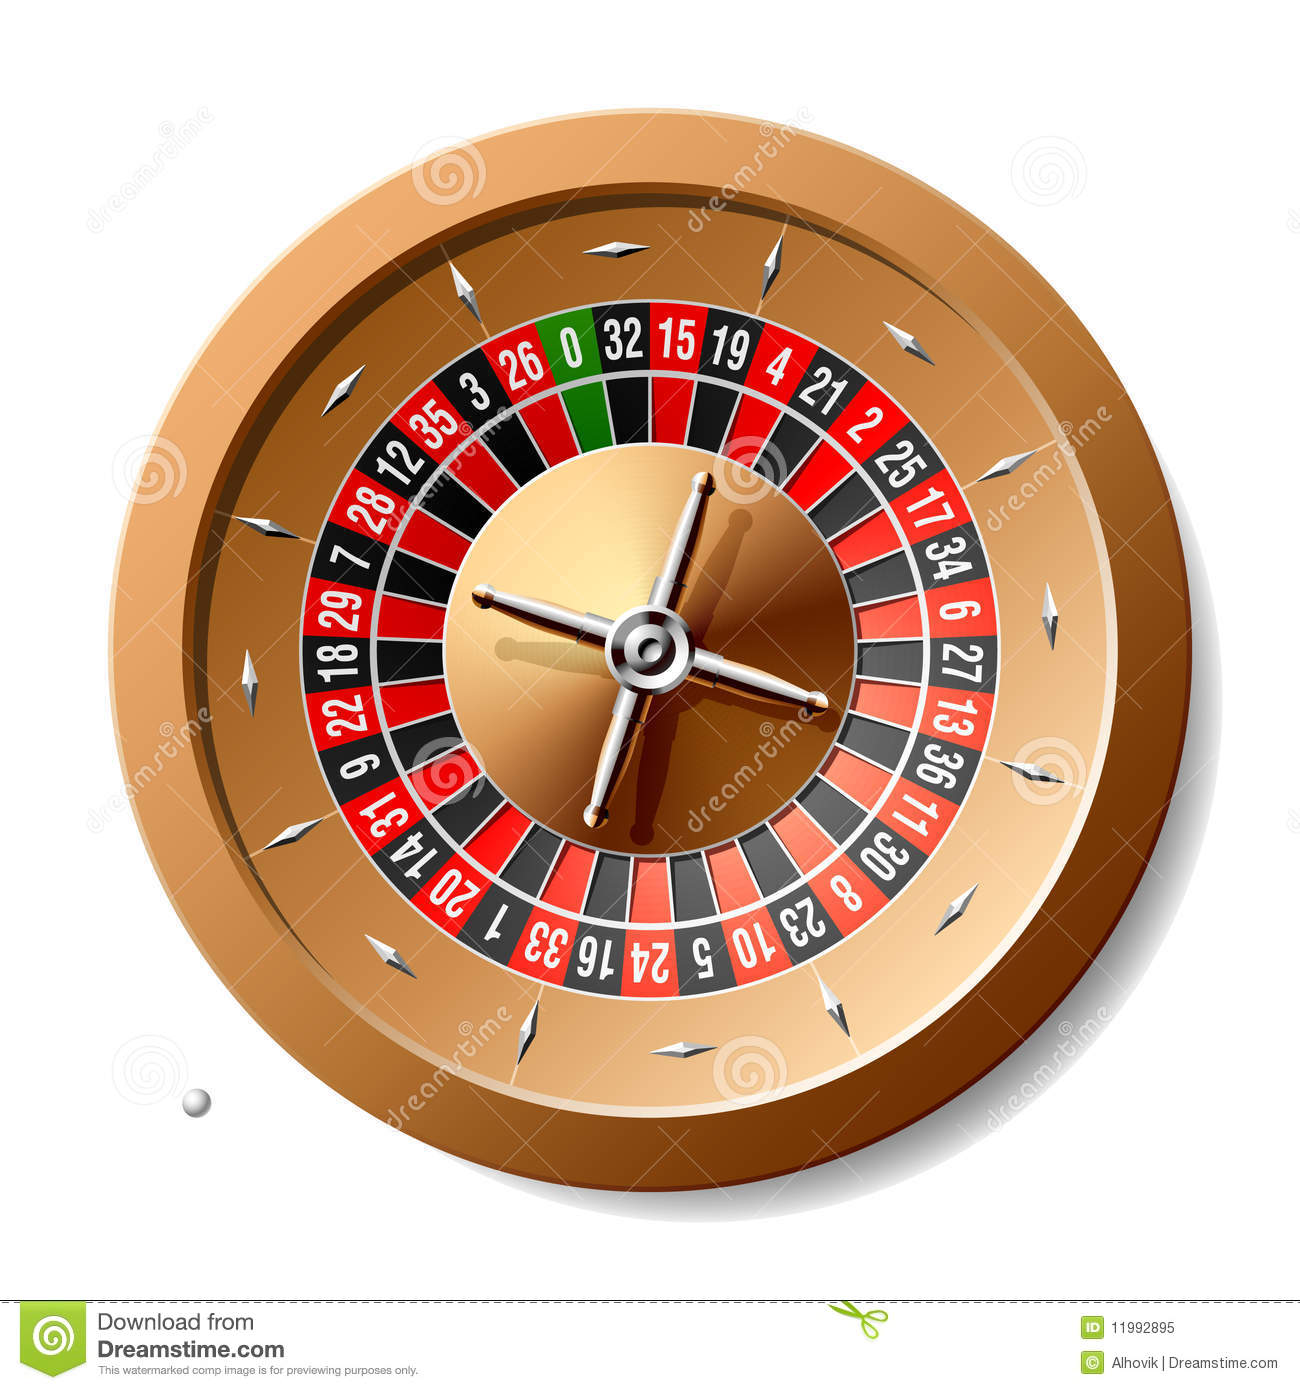 Free roulette wheel app tupats hawaiian poke sauce ingredients